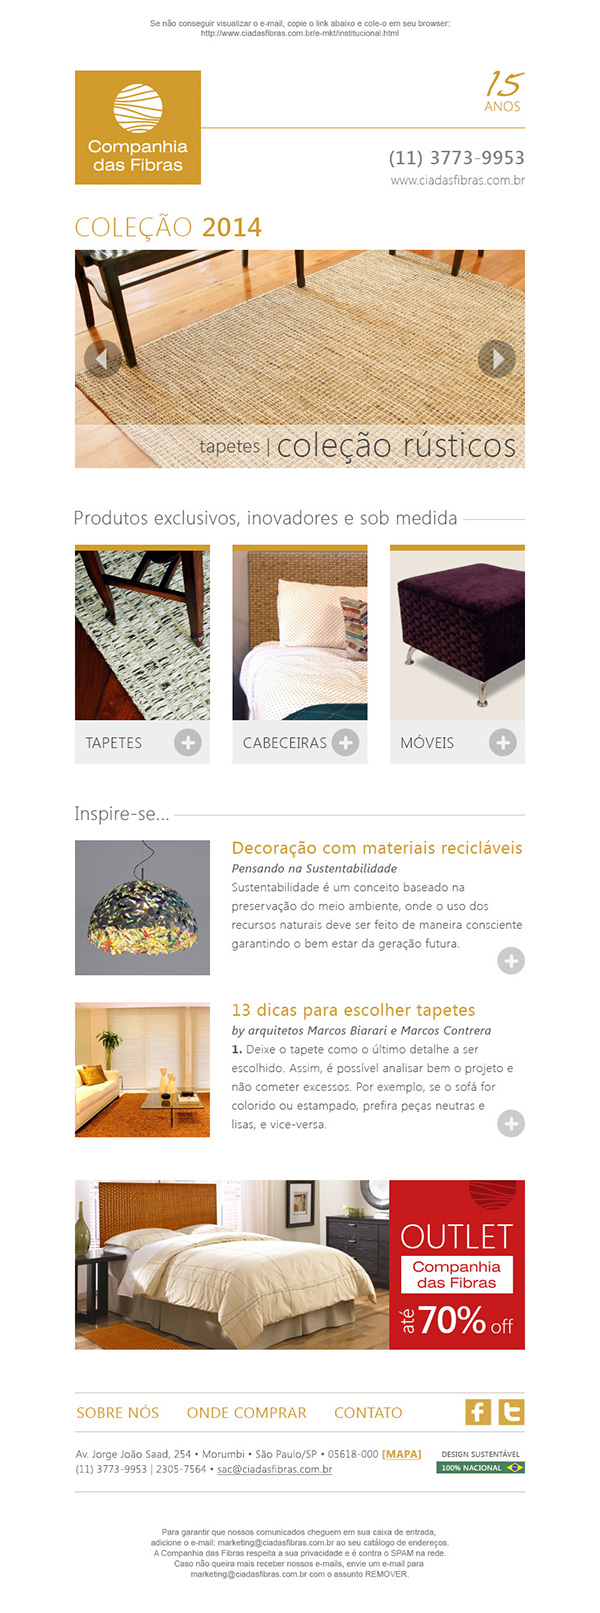 E-mail marketing/newsletter – Companhia das Fibras | Web Design